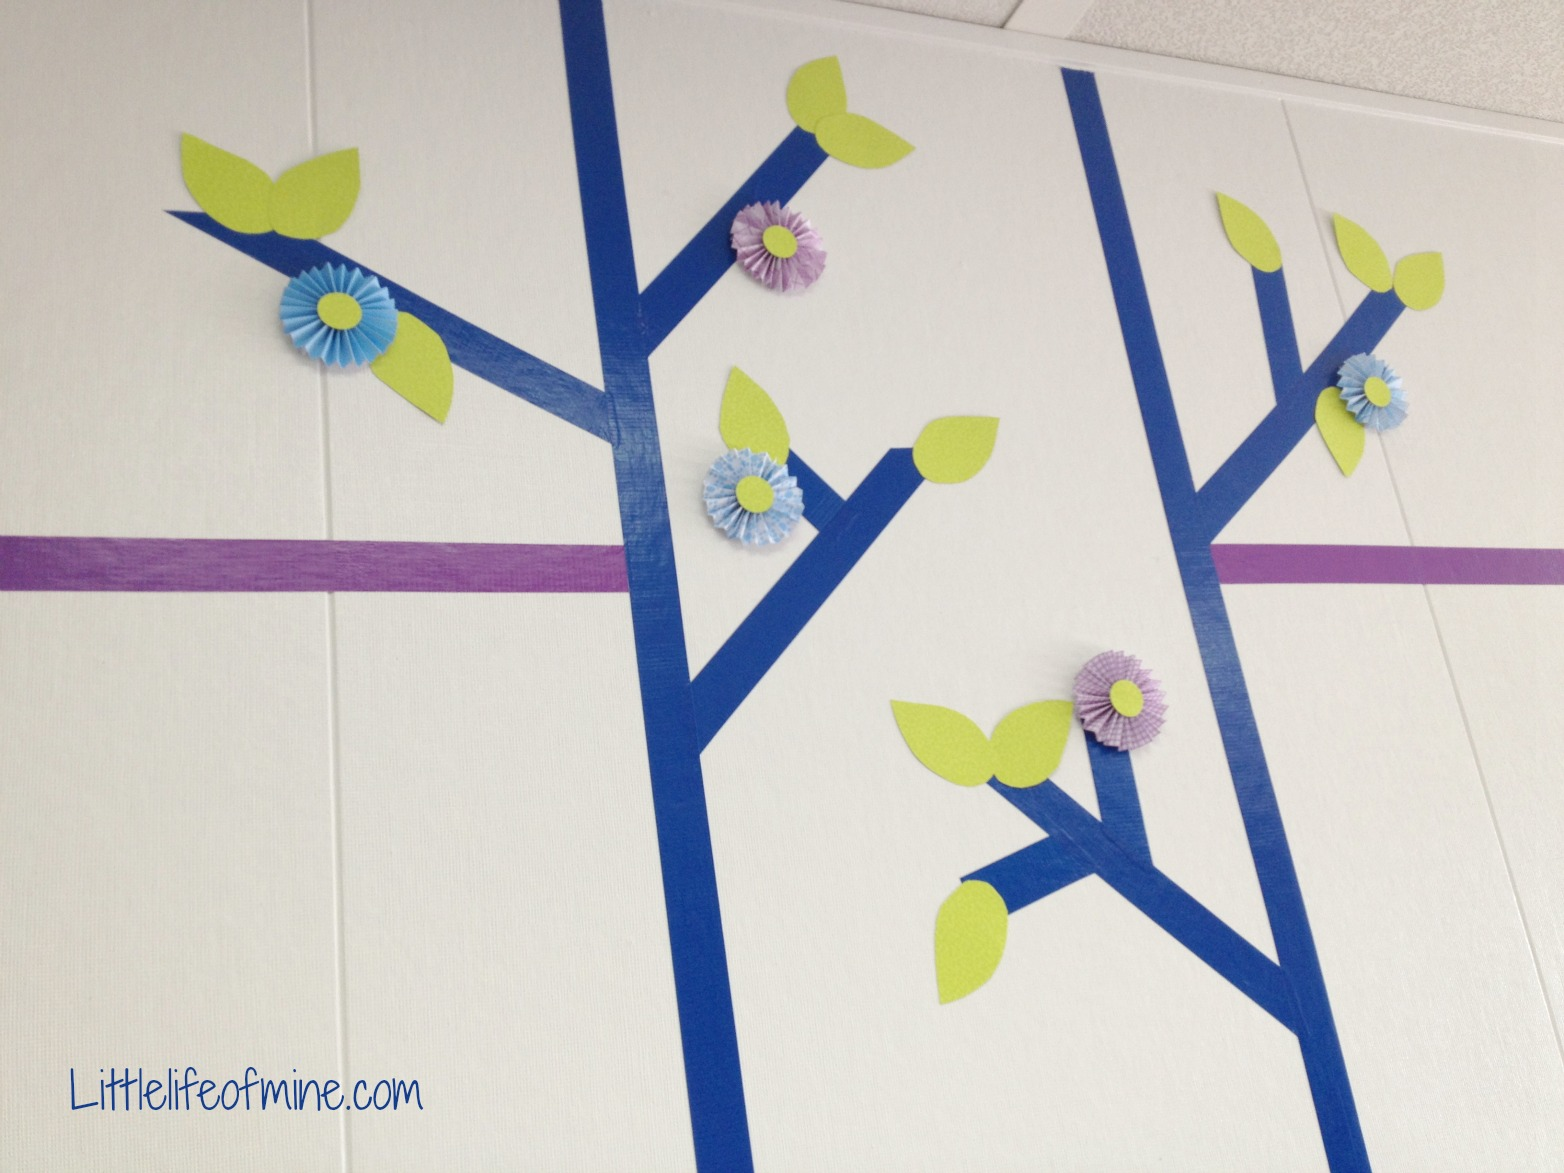 decorating with duct tape